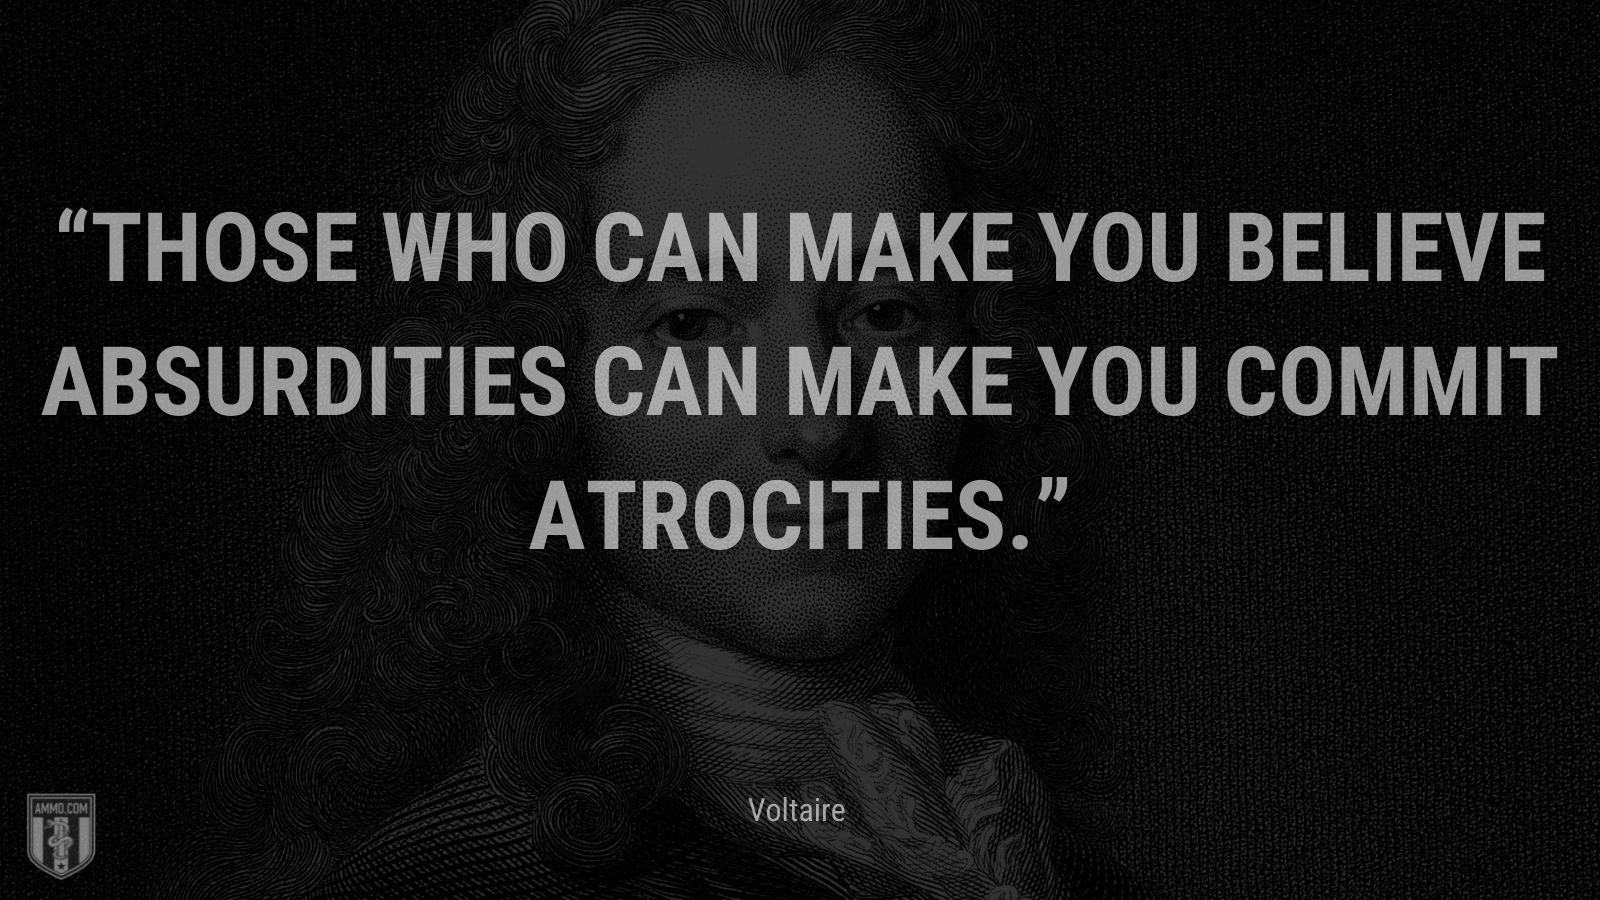 """""""Those who can make you believe absurdities can make you commit atrocities."""" - Voltaire"""